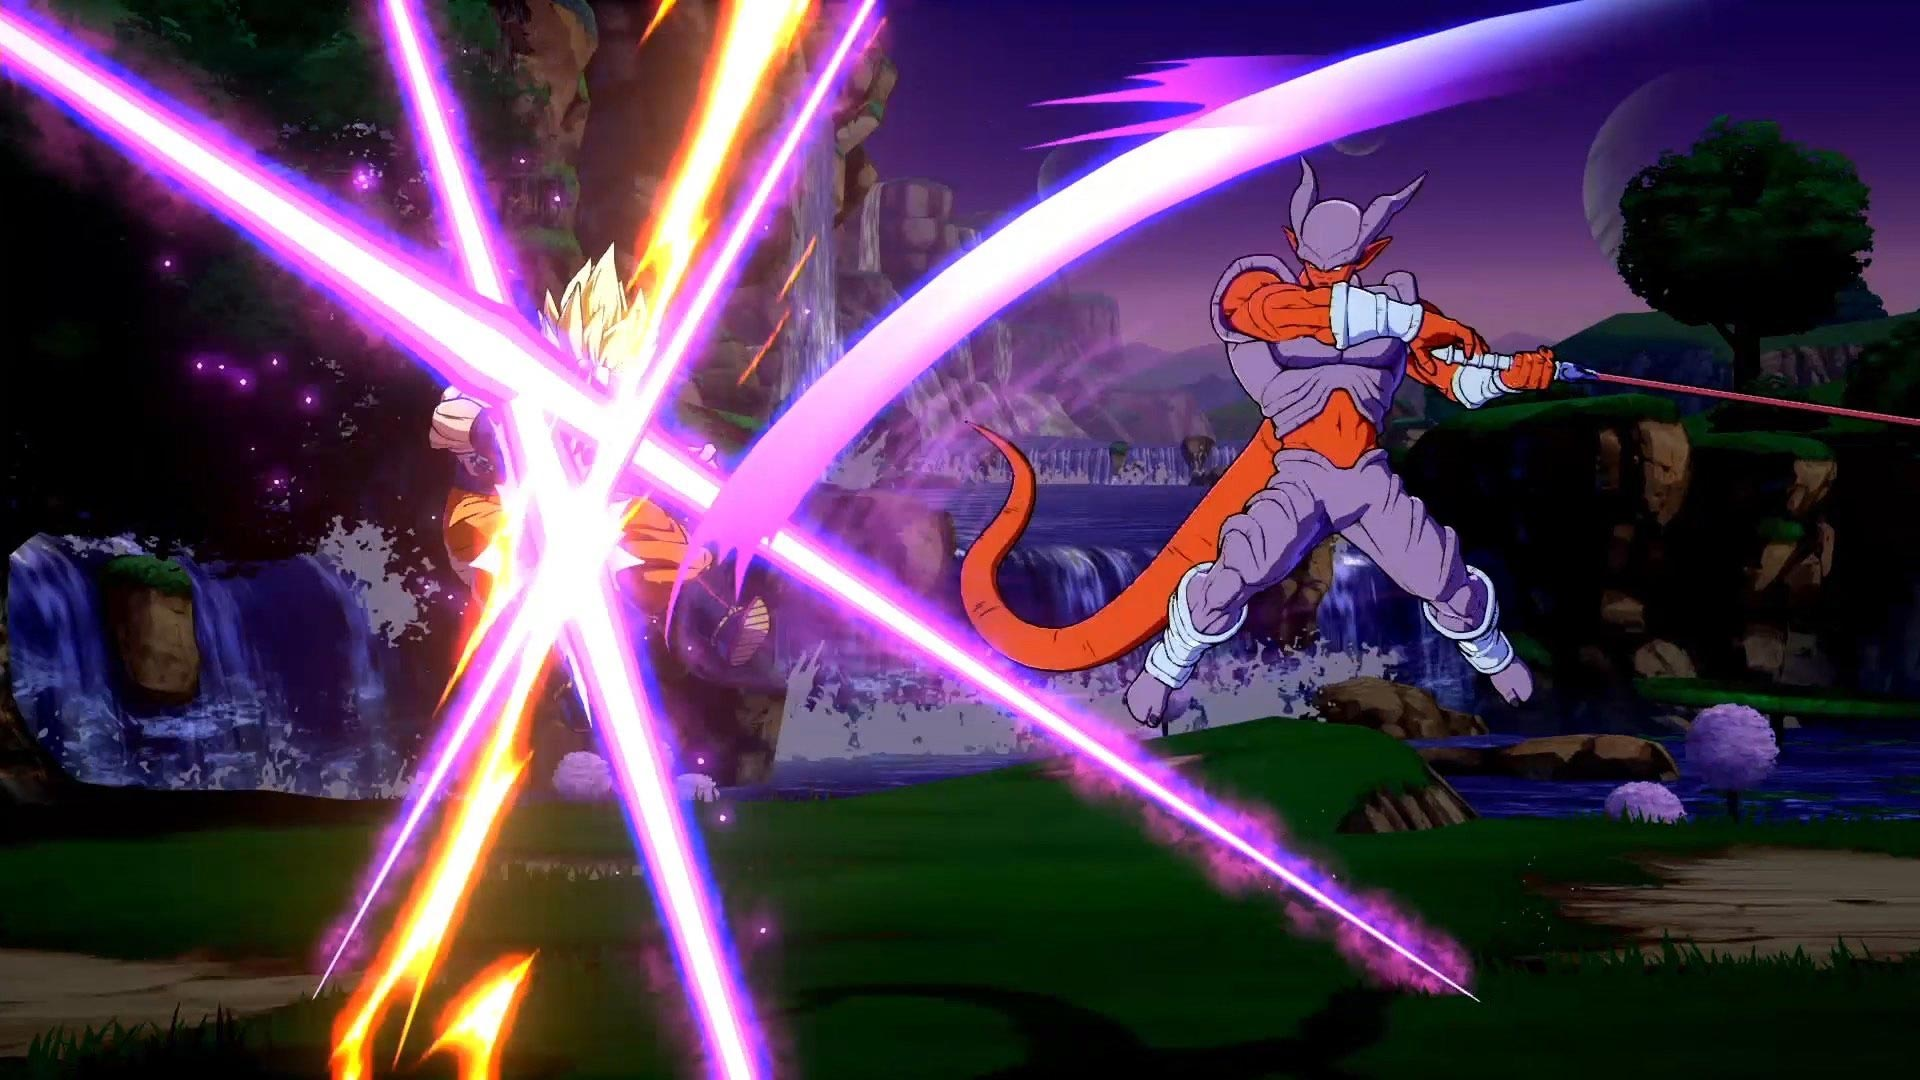 Janemba screenshots in Dragon Ball FighterZ 3 out of 4 image gallery